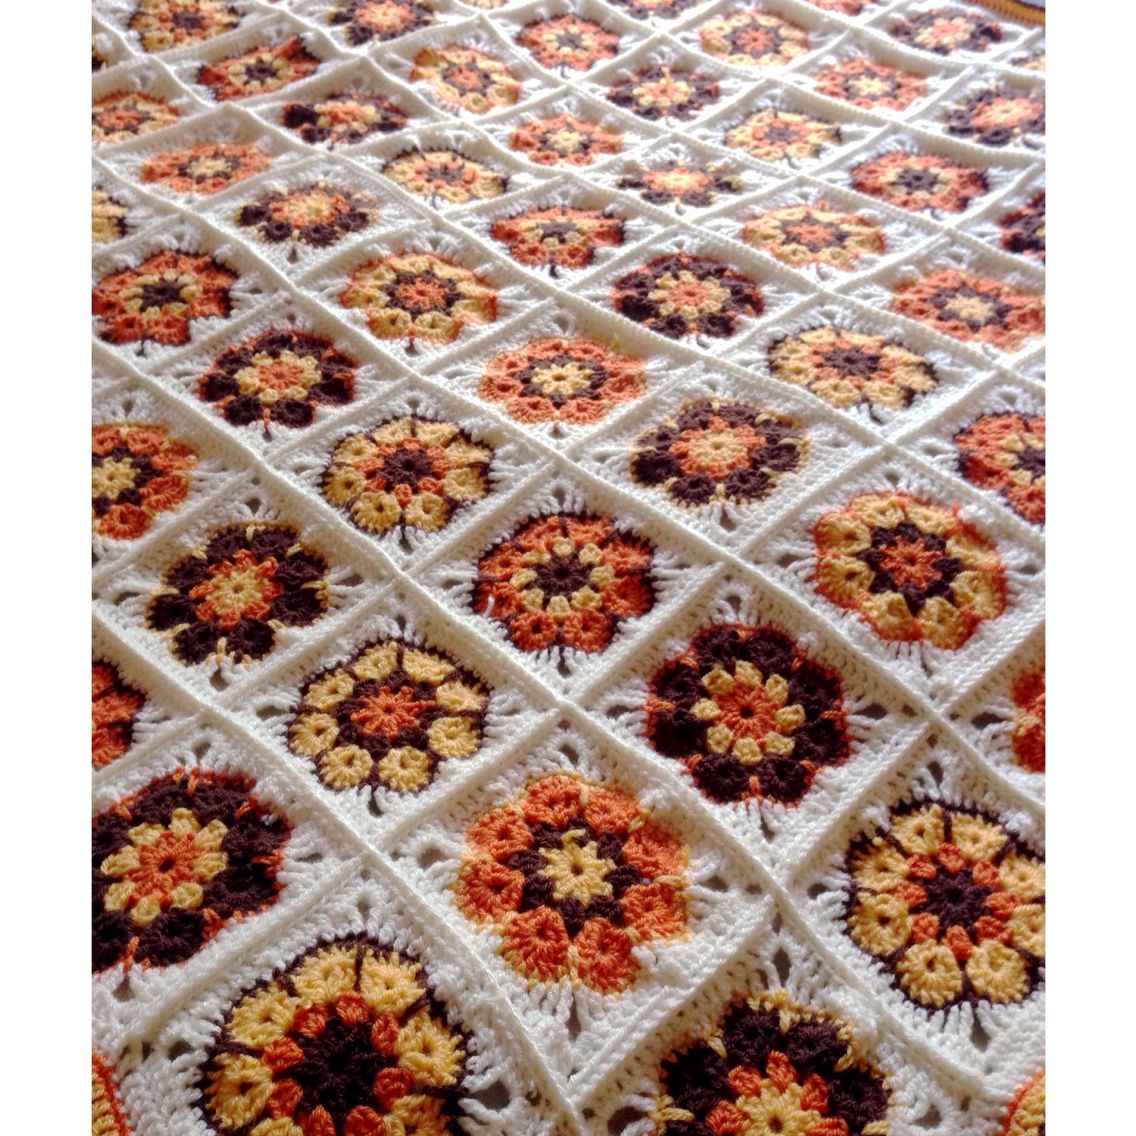 70s style decor granny square blanket made from 6 petal crochet ...